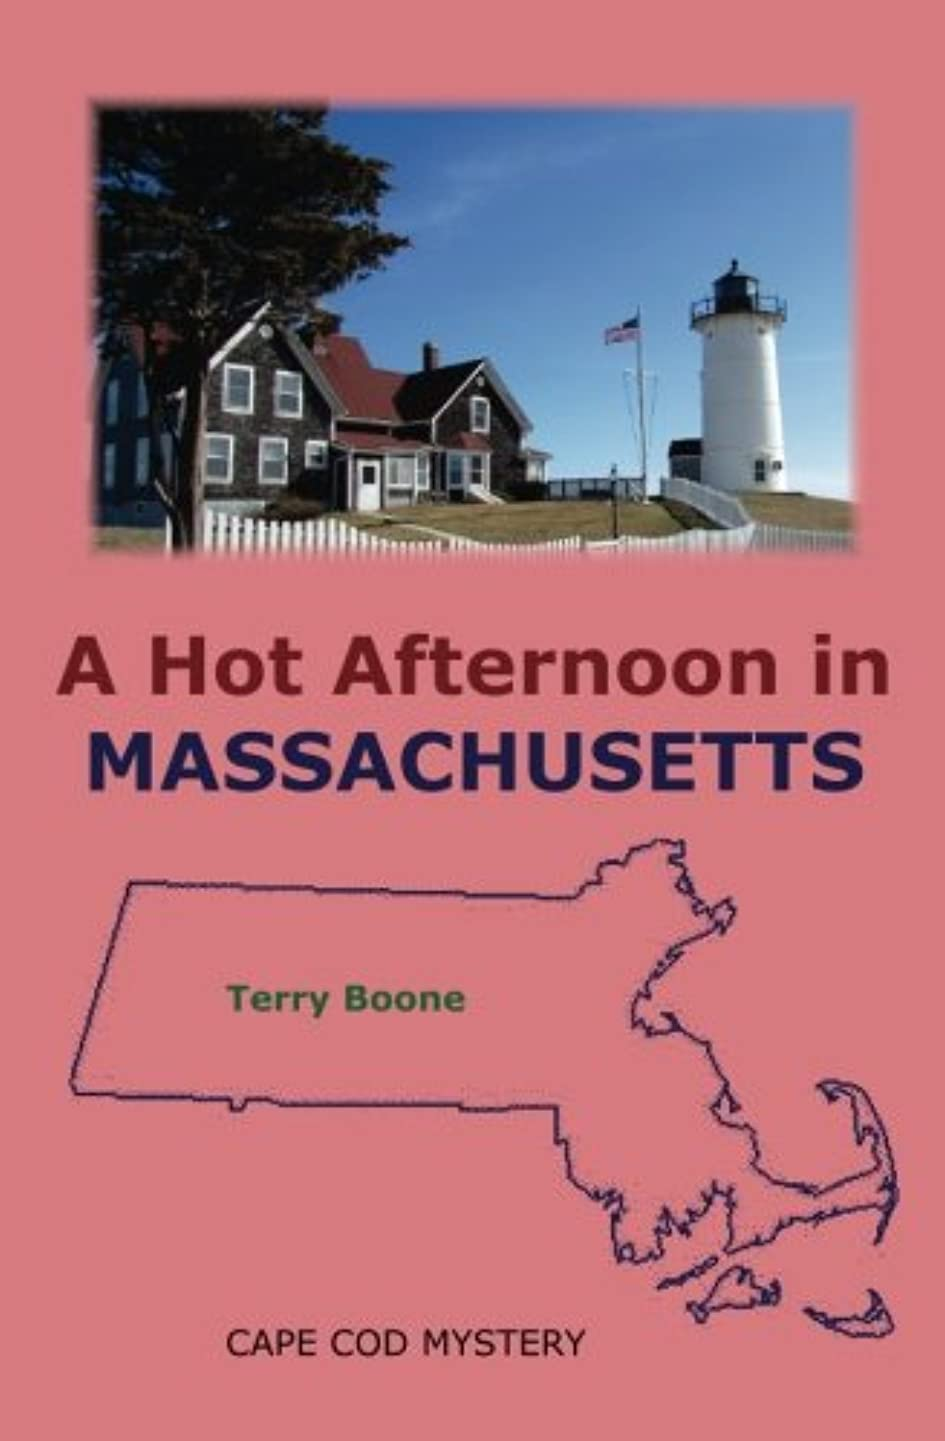 A Hot Afternoon in MASSACHUSETTS (New England Mysteries) (Volume 5)